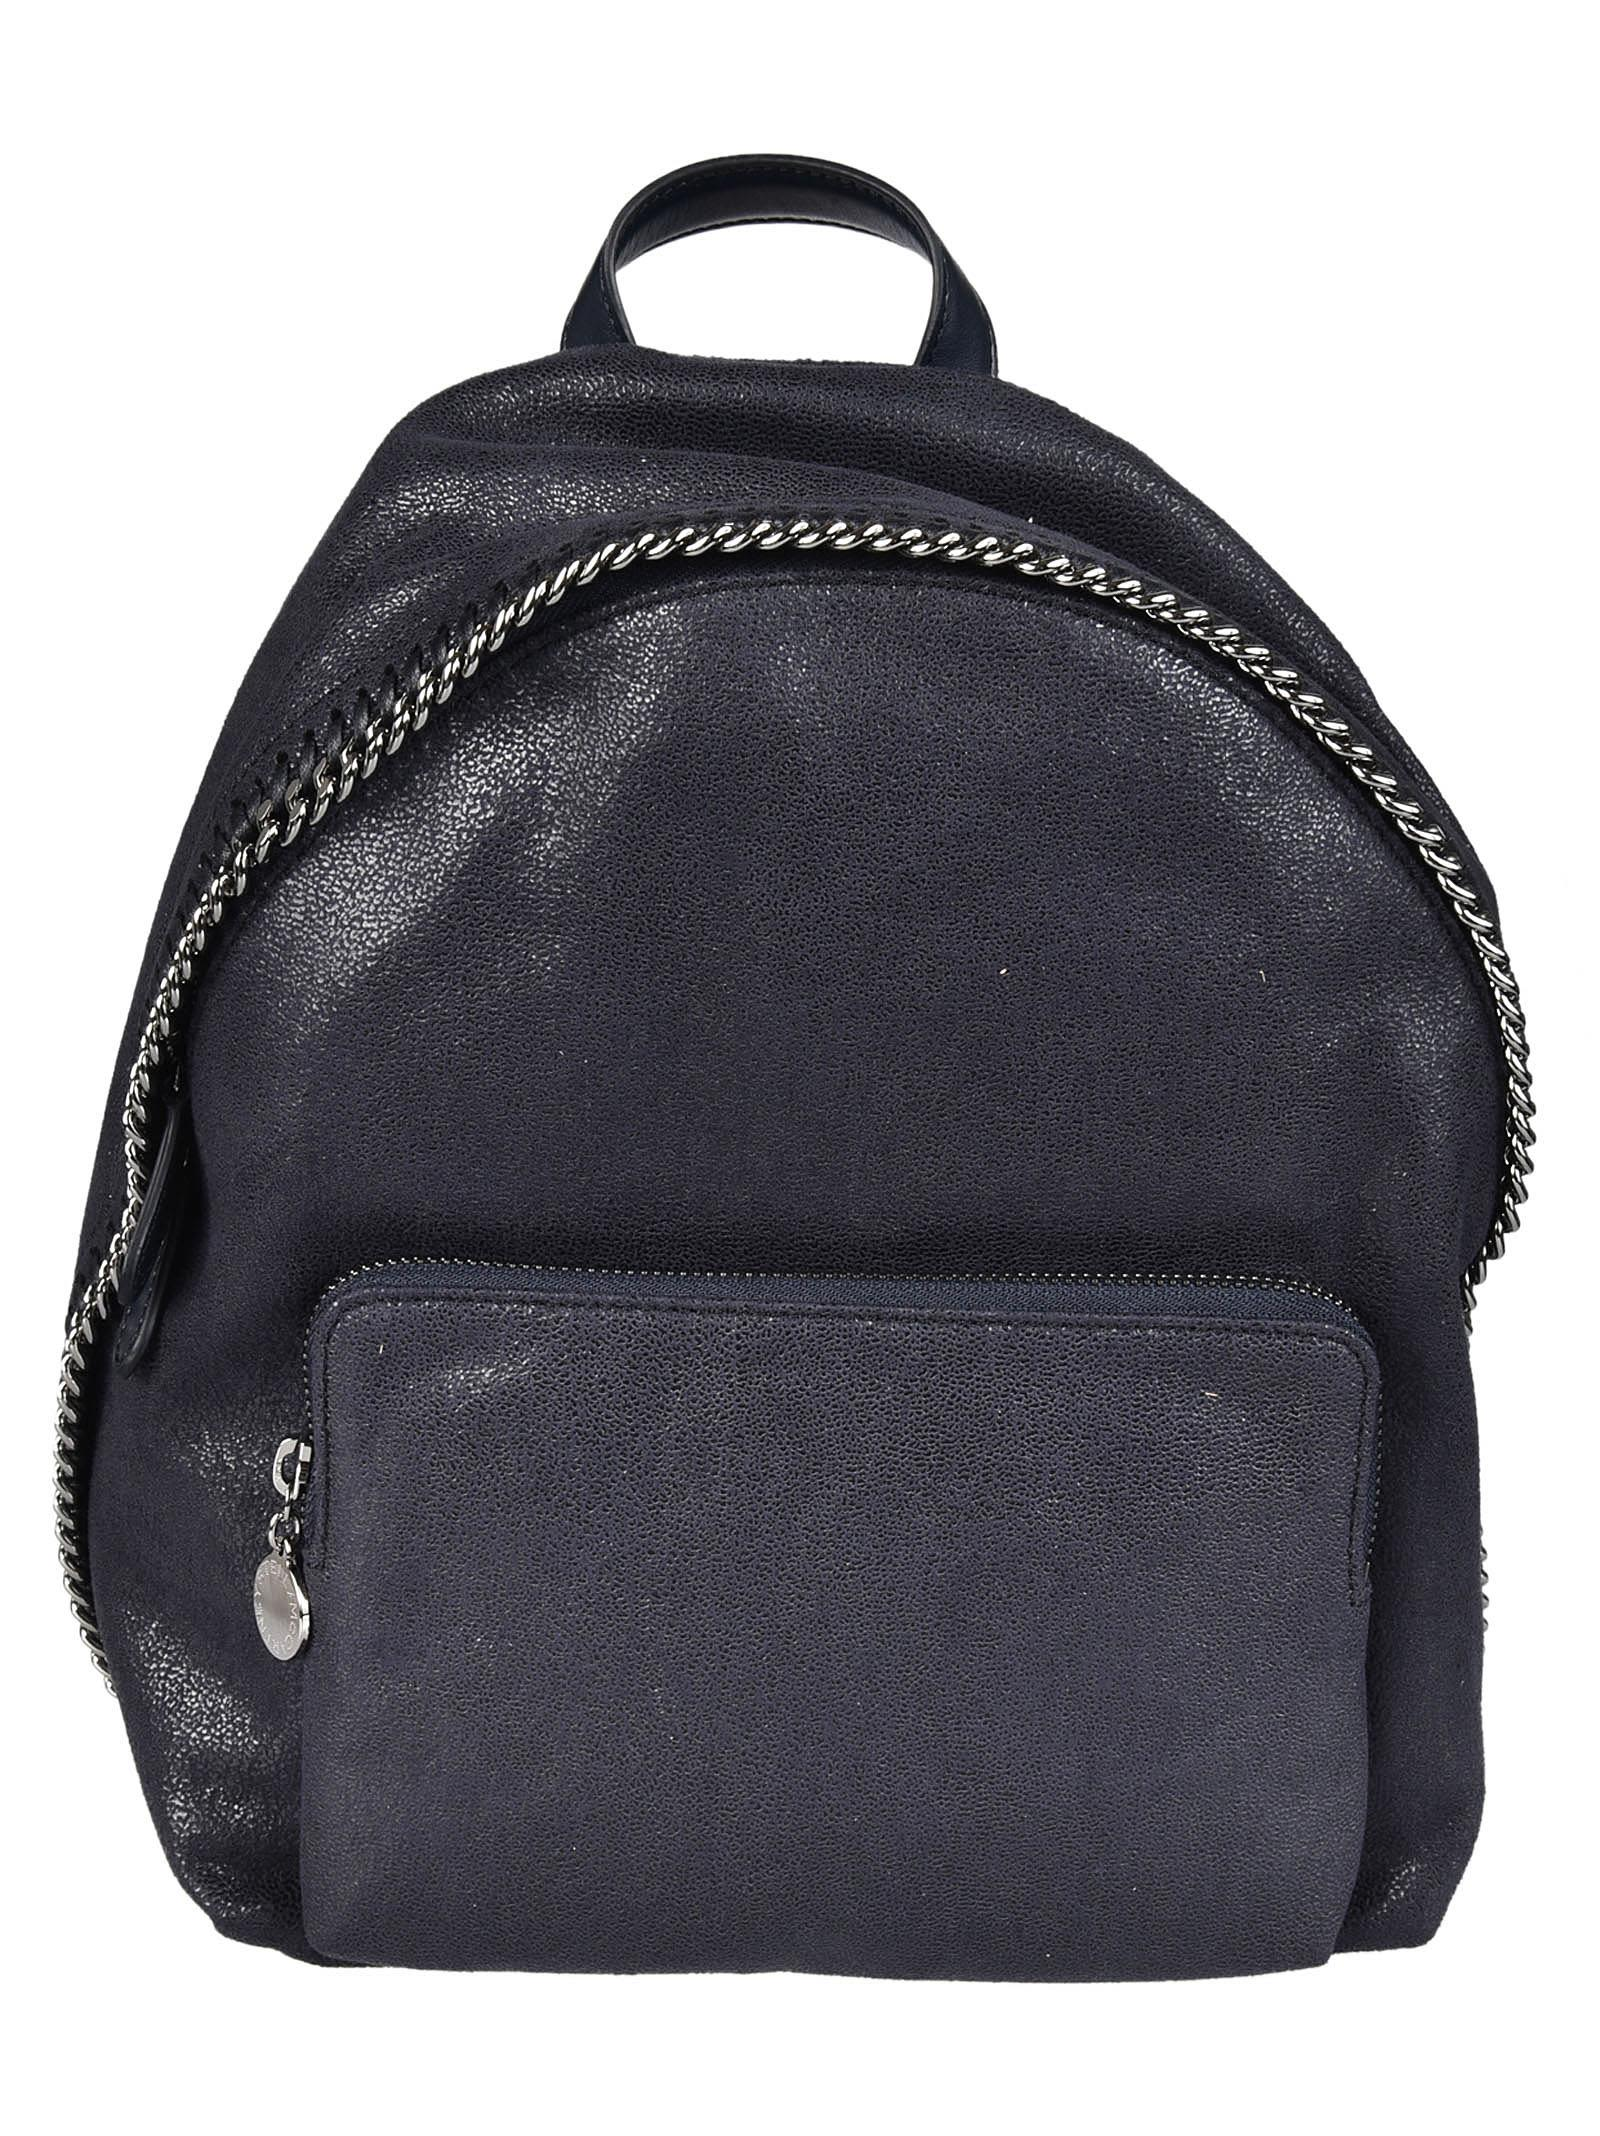 stella mccartney stella mccartney mini falabella backpack women 39 s backpacks italist. Black Bedroom Furniture Sets. Home Design Ideas